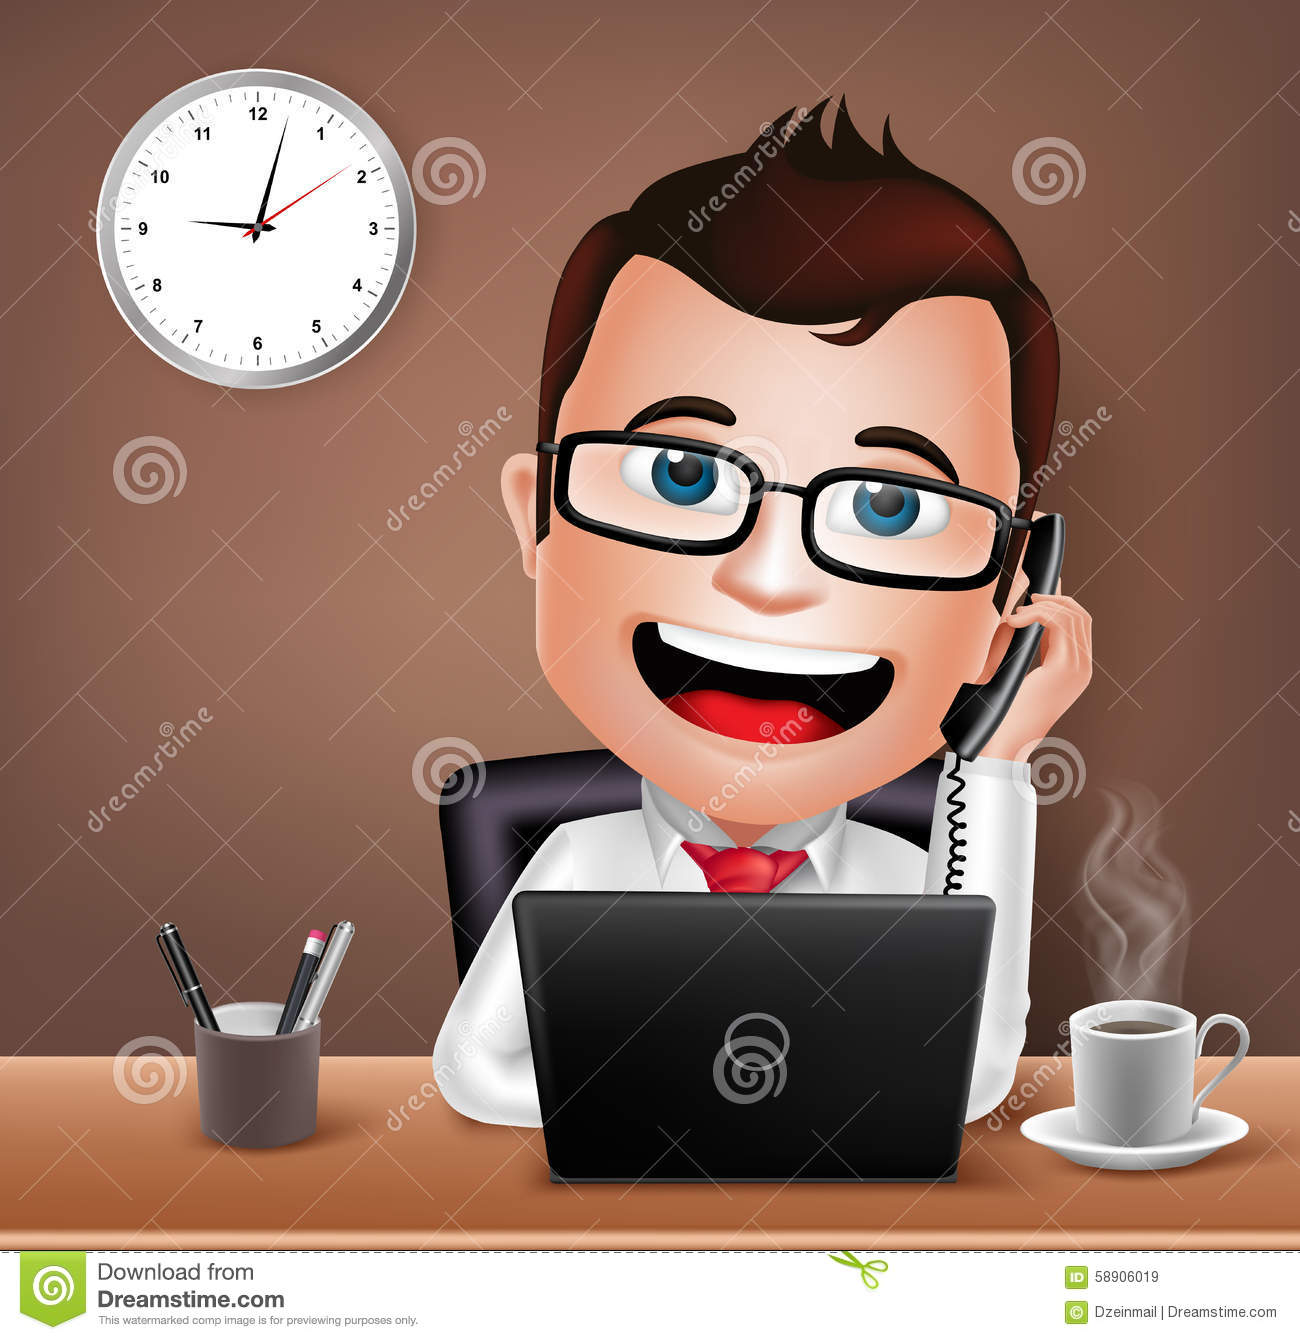 Employee Time Clock Images Essay On CollegeBrainstorm